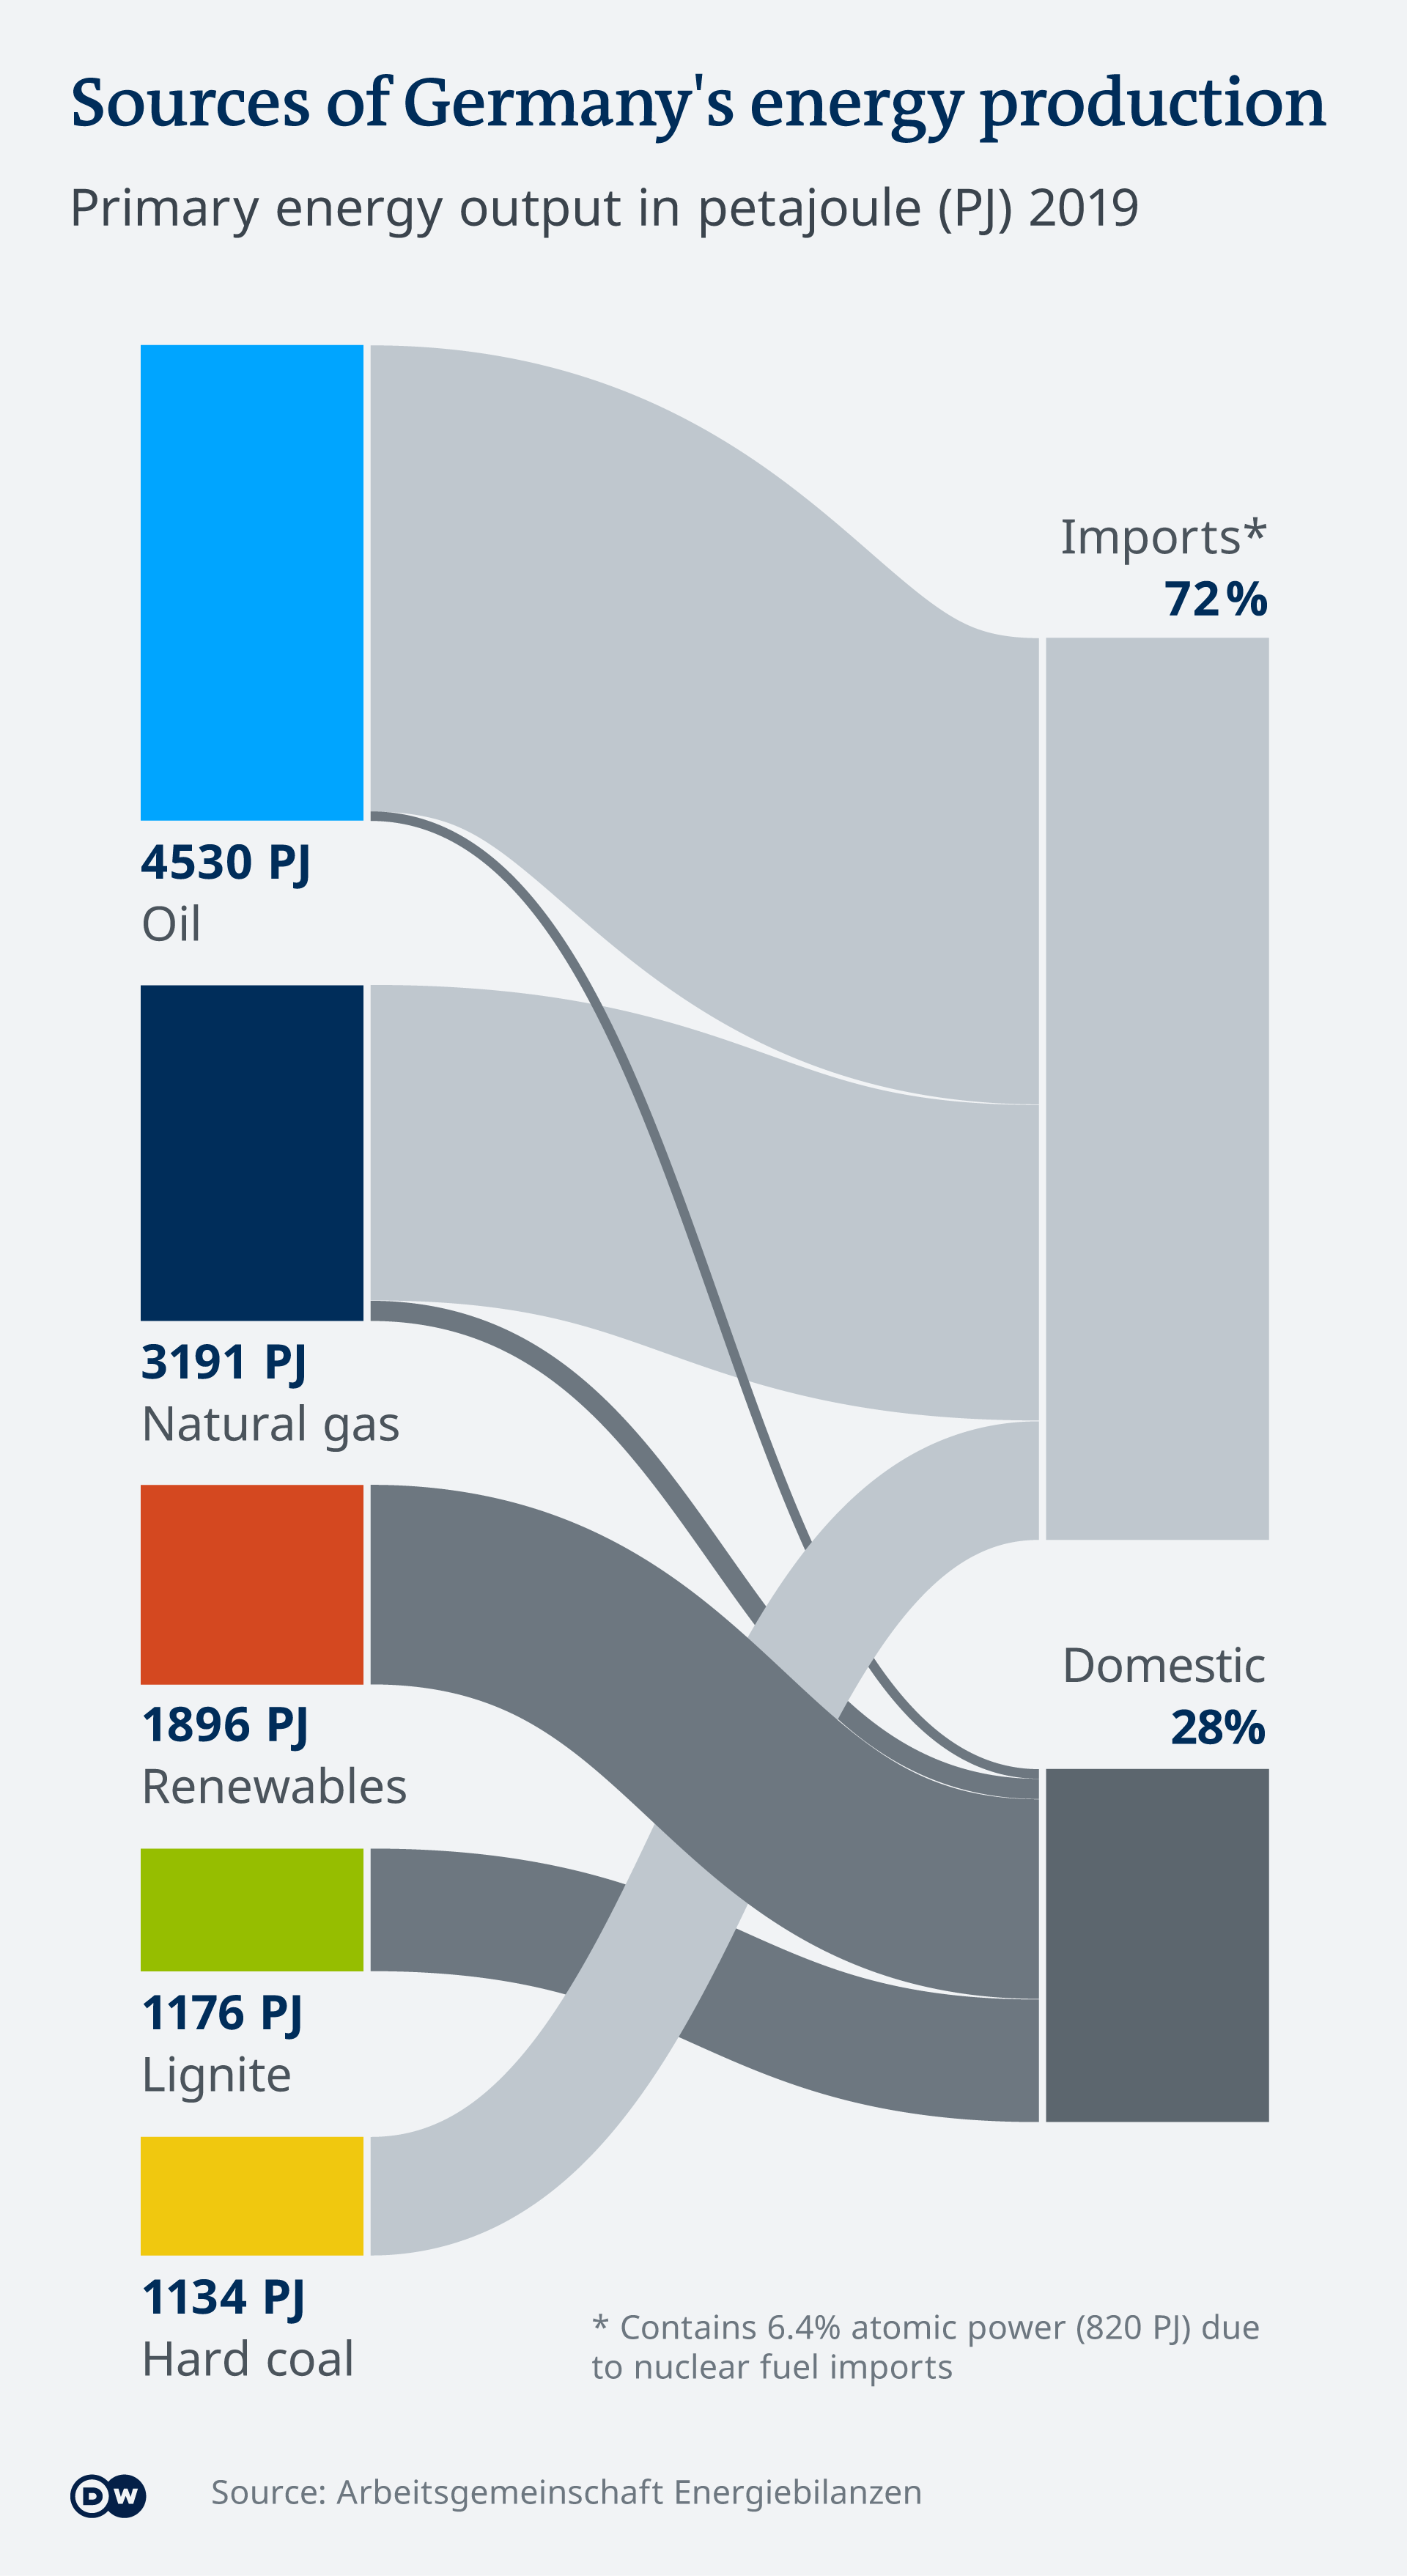 Chart showing source of Germany's energy production